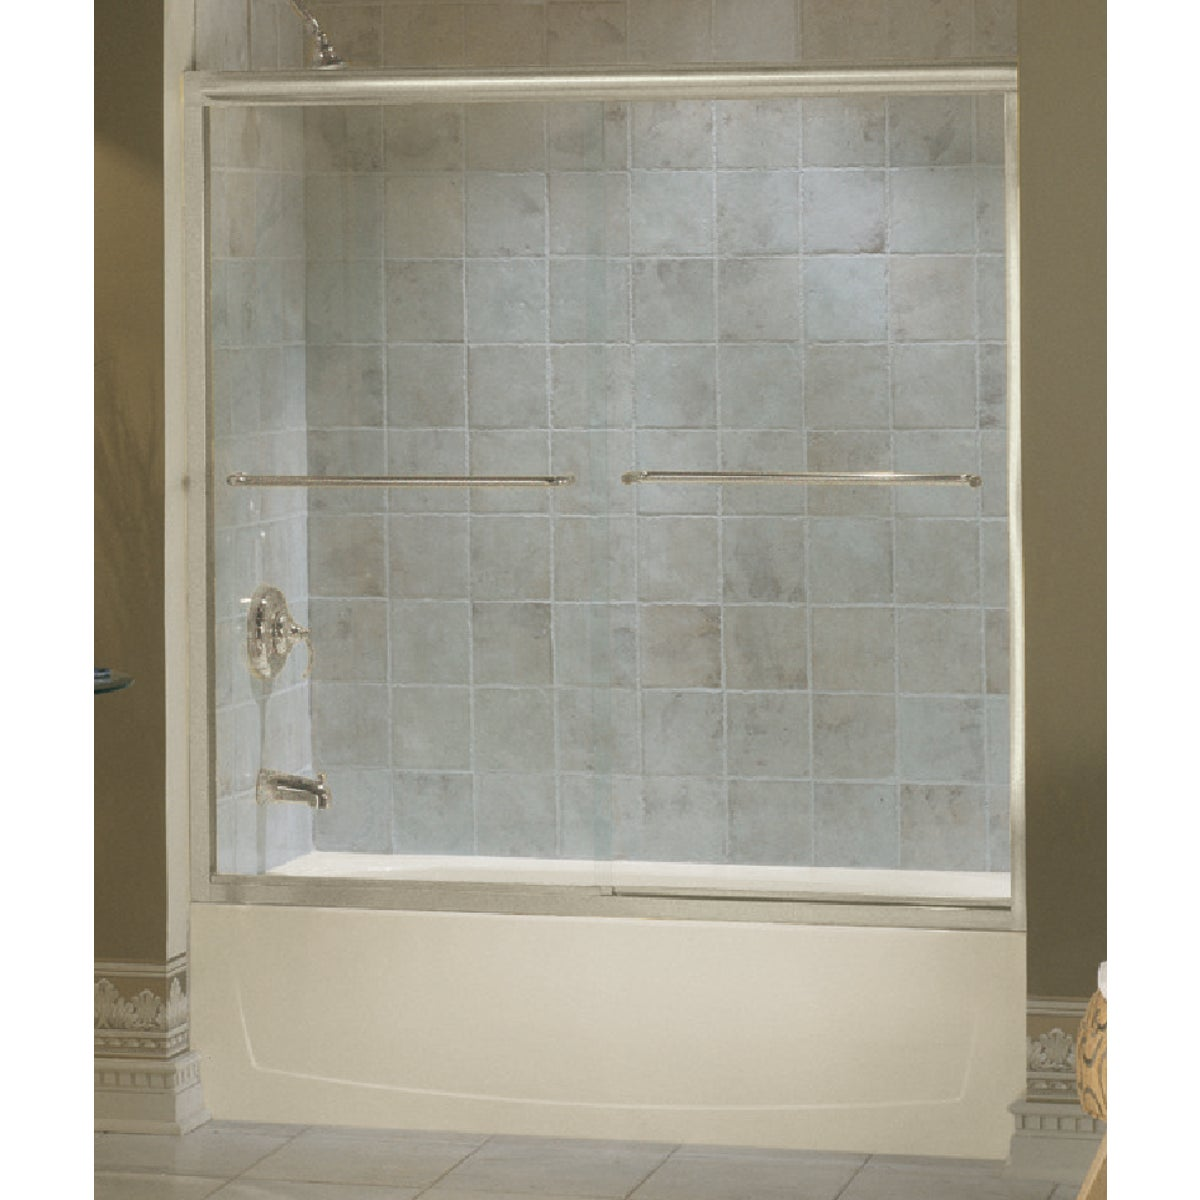 54-5/8-59-5/8 NKL TUB DR - 5425-59N-G05 by Sterling Doors